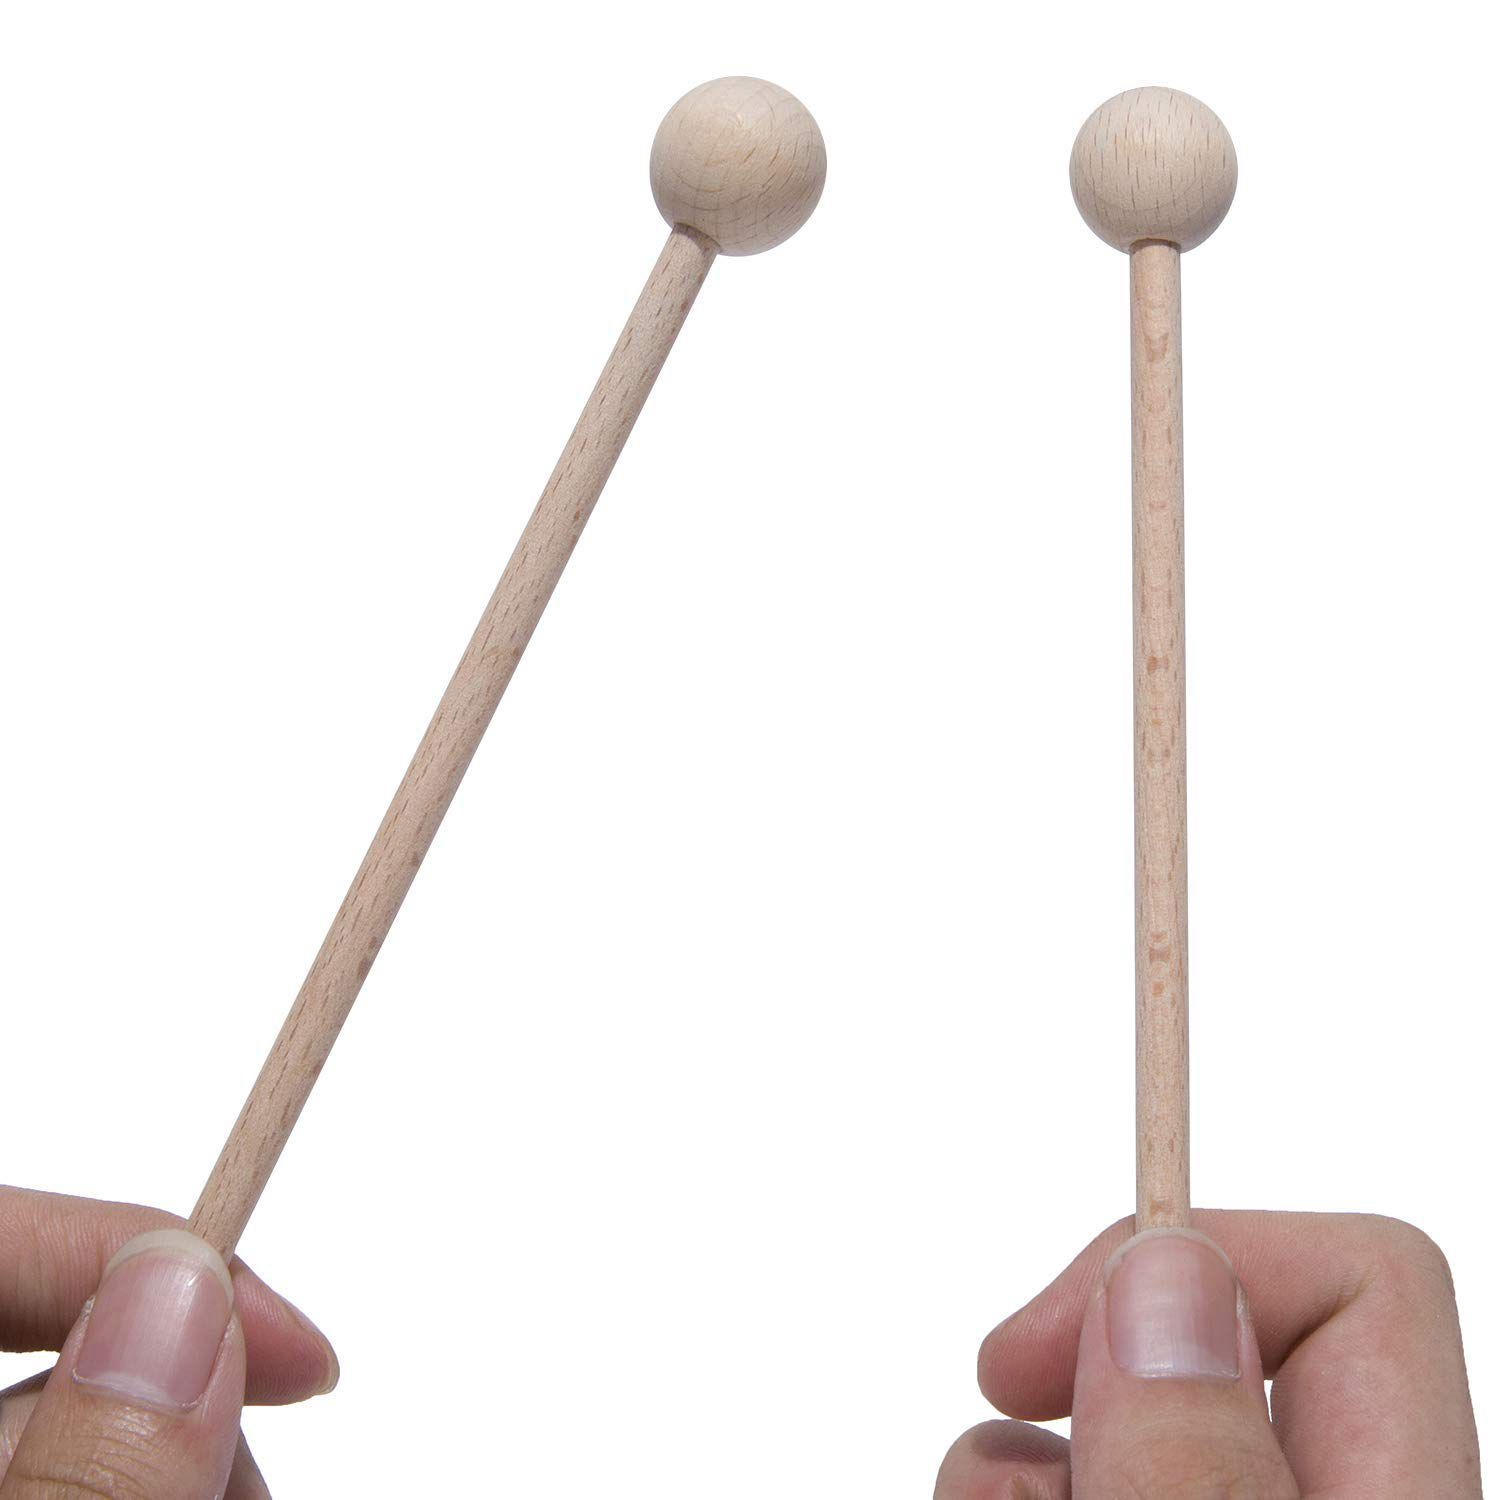 SEWS-2 Pair Wood Mallets Percussion Sticks For Energy Chime, Xylophone, Wood Block, Glockenspiel And Bells